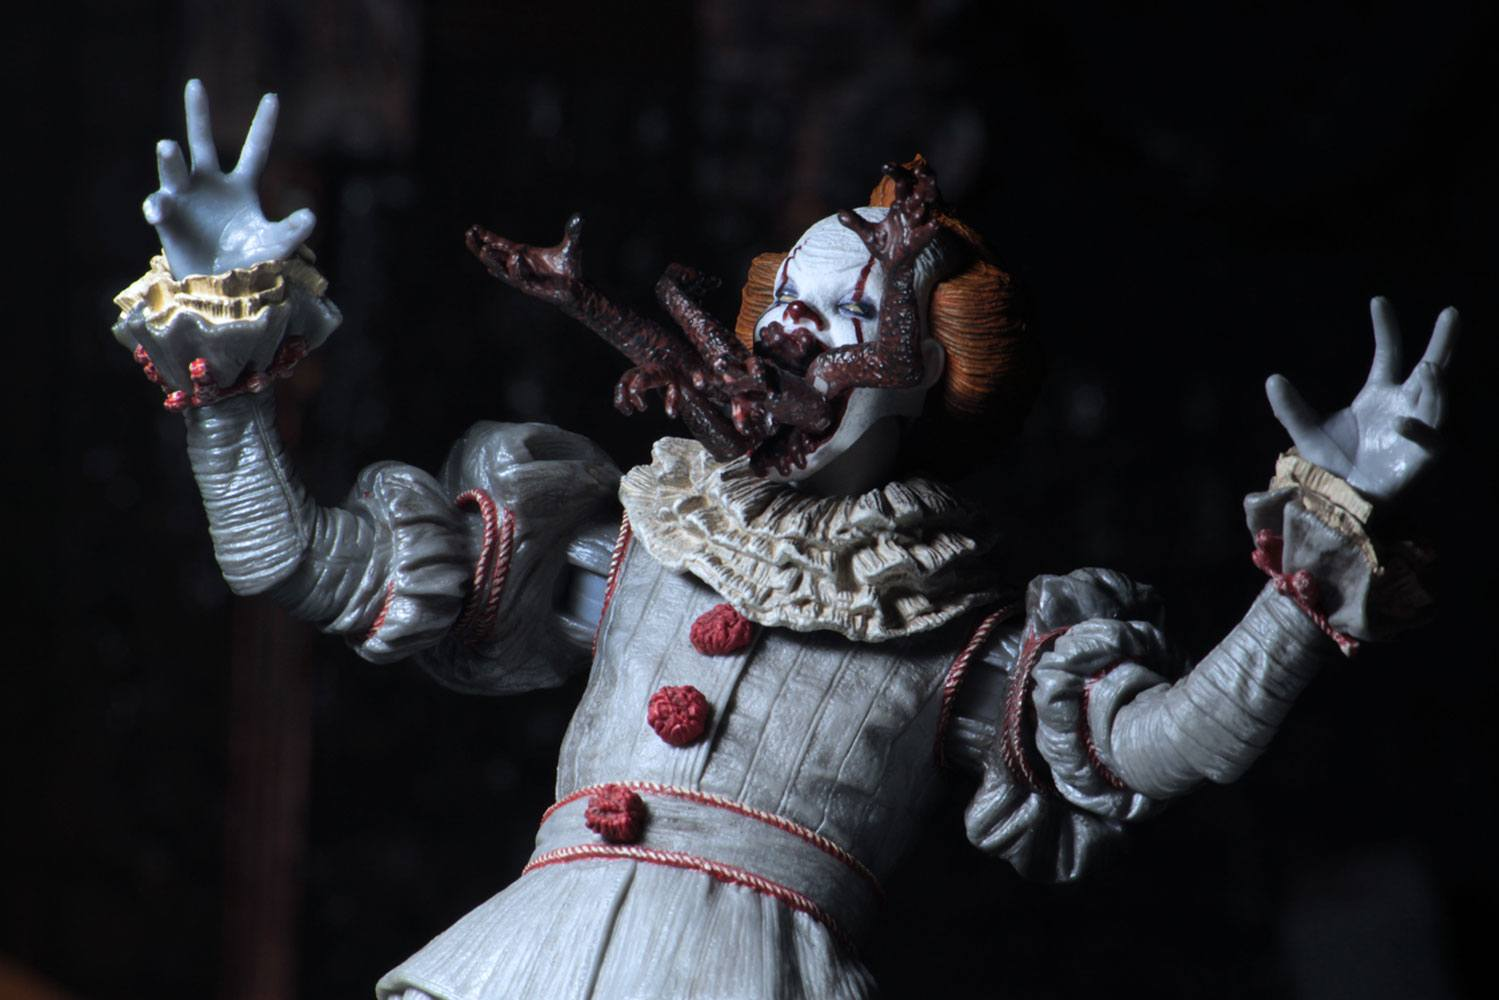 Ultimate Pennywise Clown Danzante Dancing It 2017 Action Figure  18cm NECA 45470